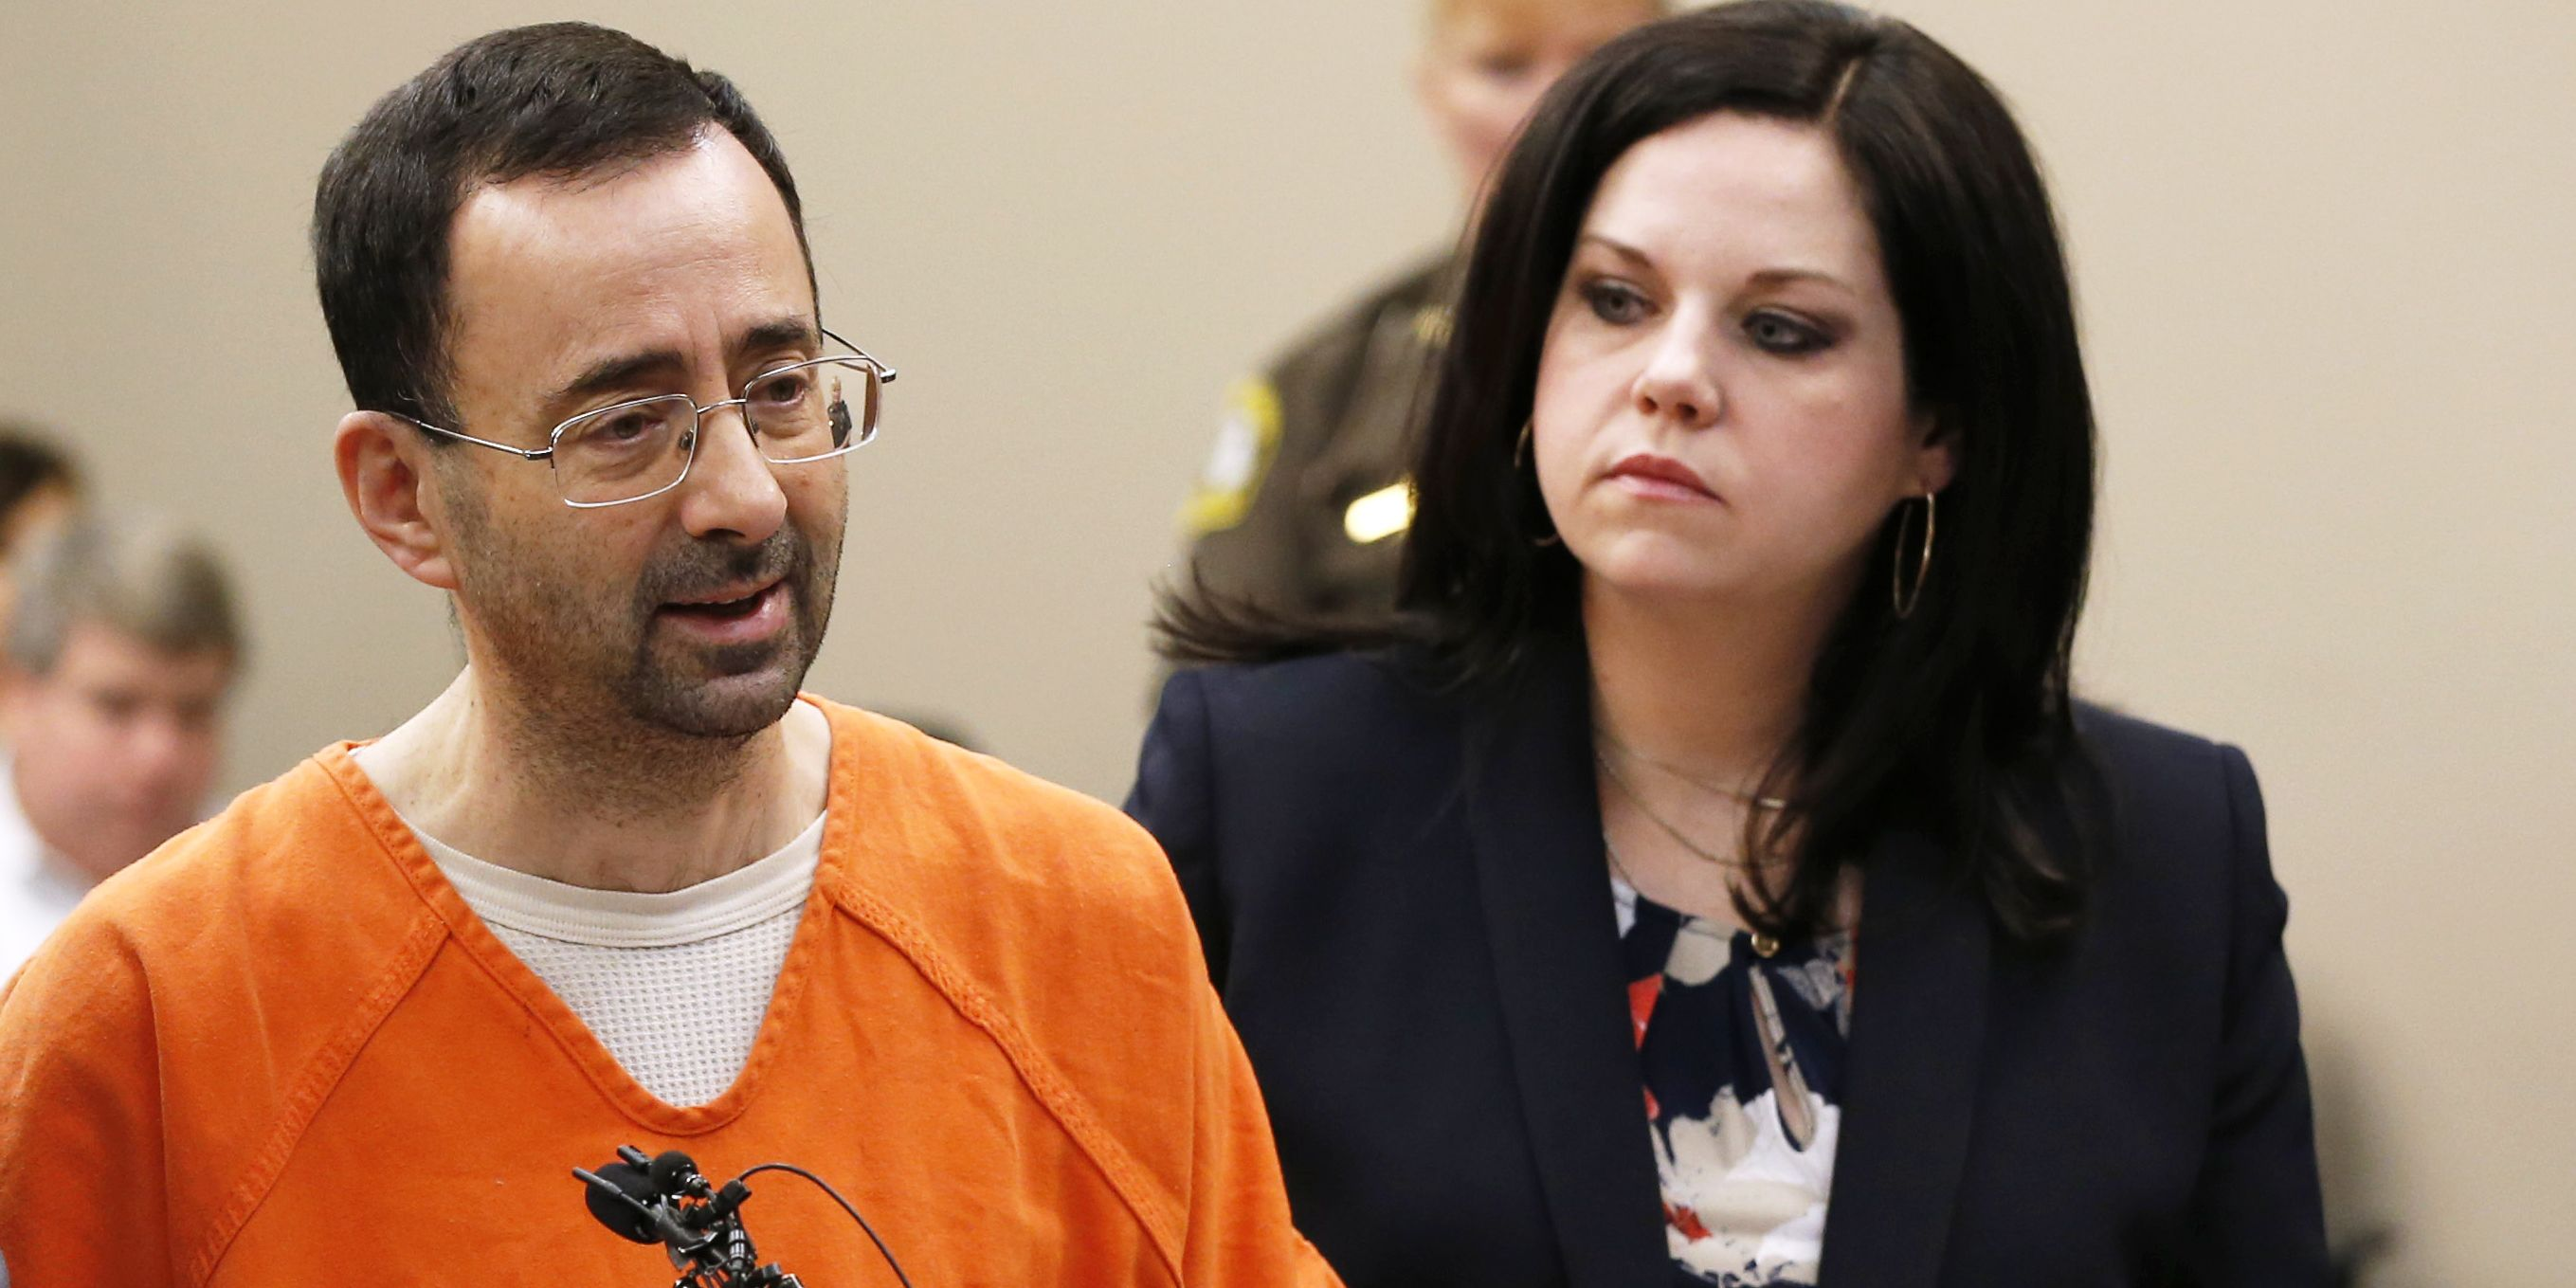 Larry Nassar's Lawyer, Shannon Smith, Claims Her Client Has 'Hundreds' of Supporters In New HBO Documentary At the Heart of Gold